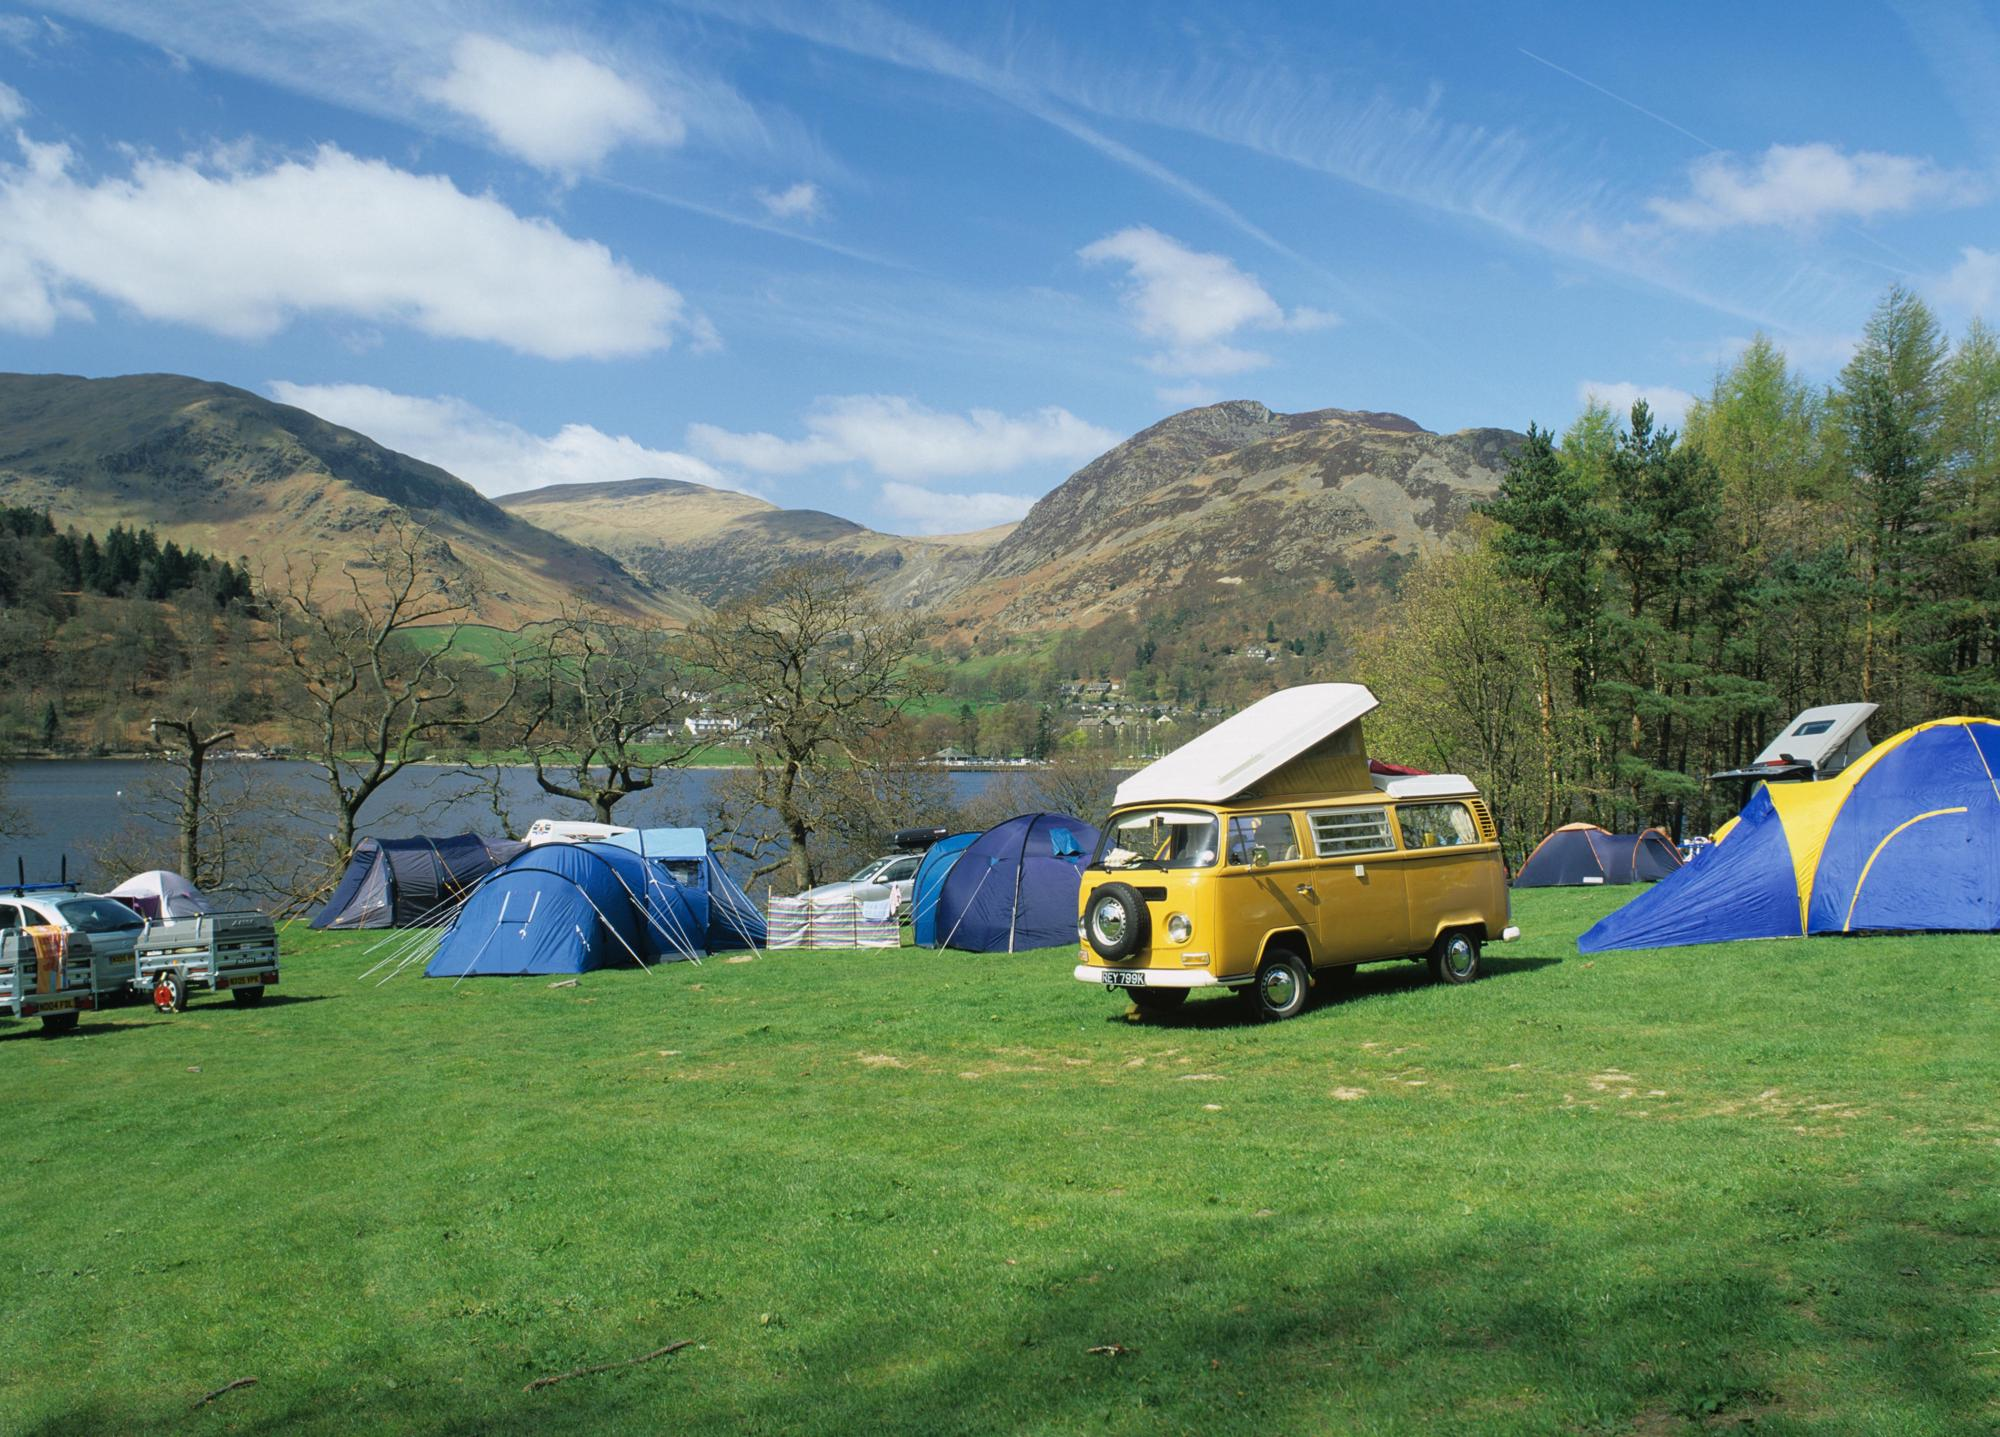 Ullswater Camping – Campsites near Ullswater, Lake District